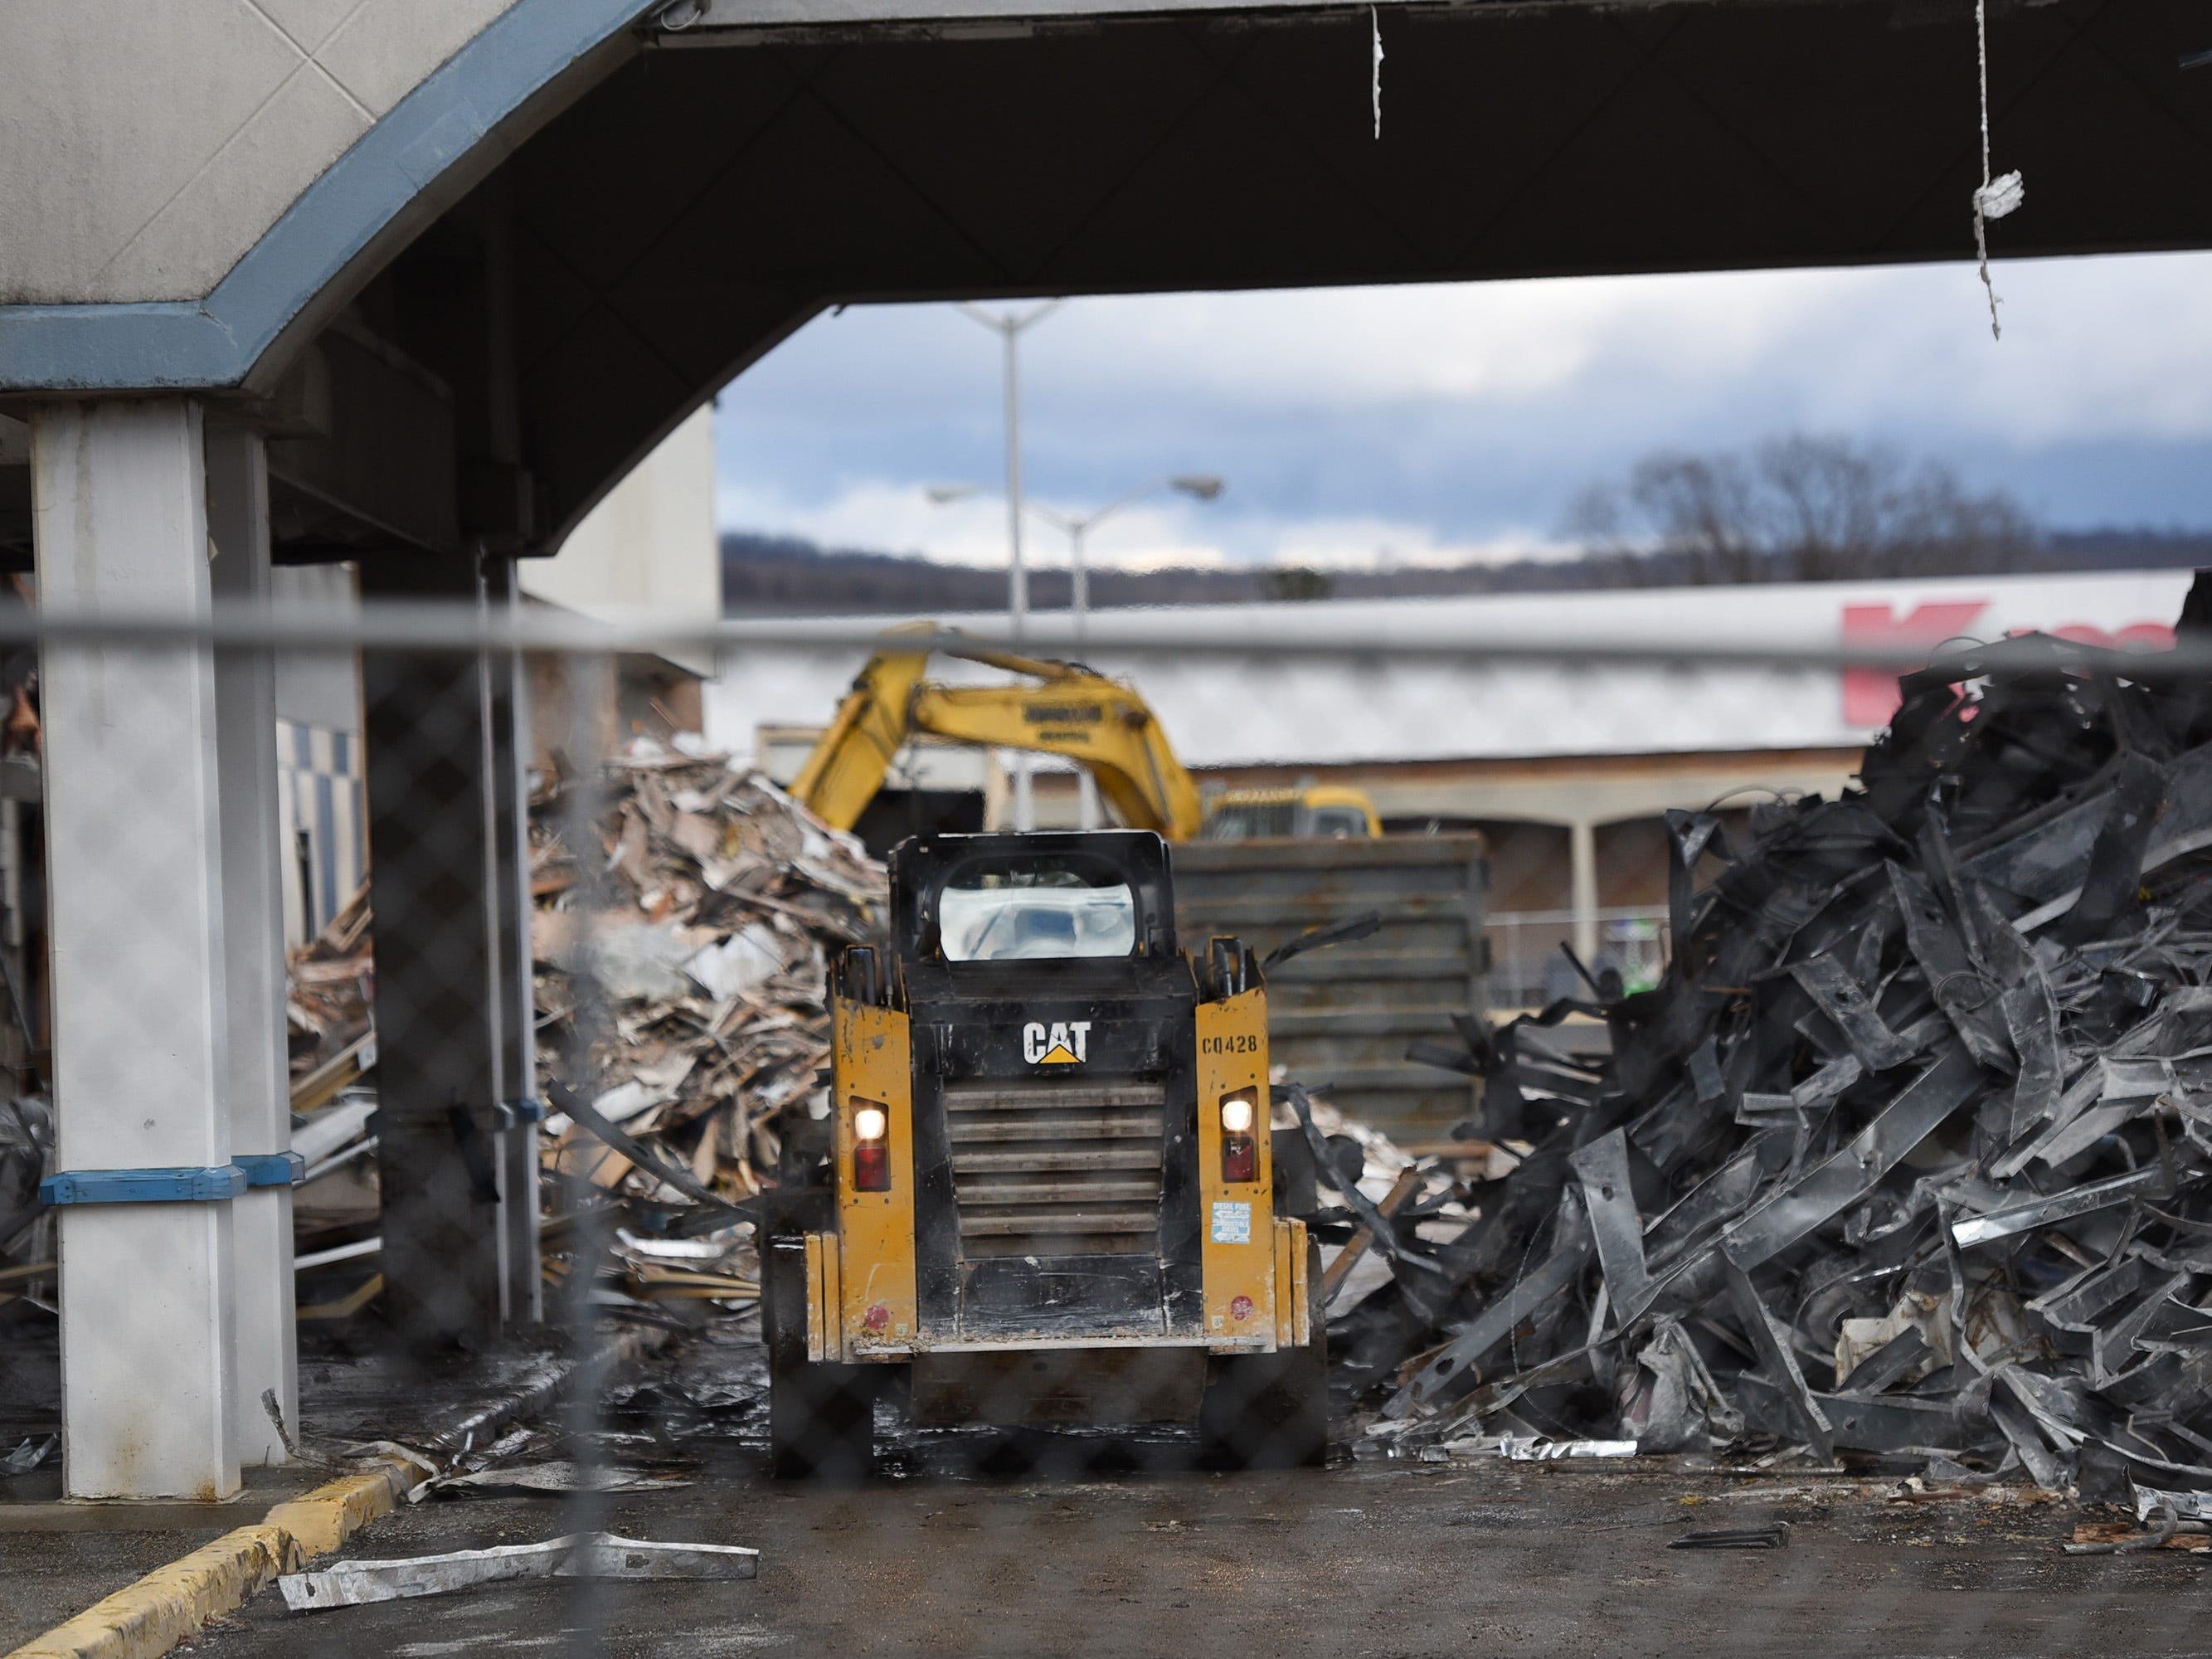 A worker operates an excavation machine as Wayne Hills Mall is being demolished, photographed   in Wayne on 02/18/19.